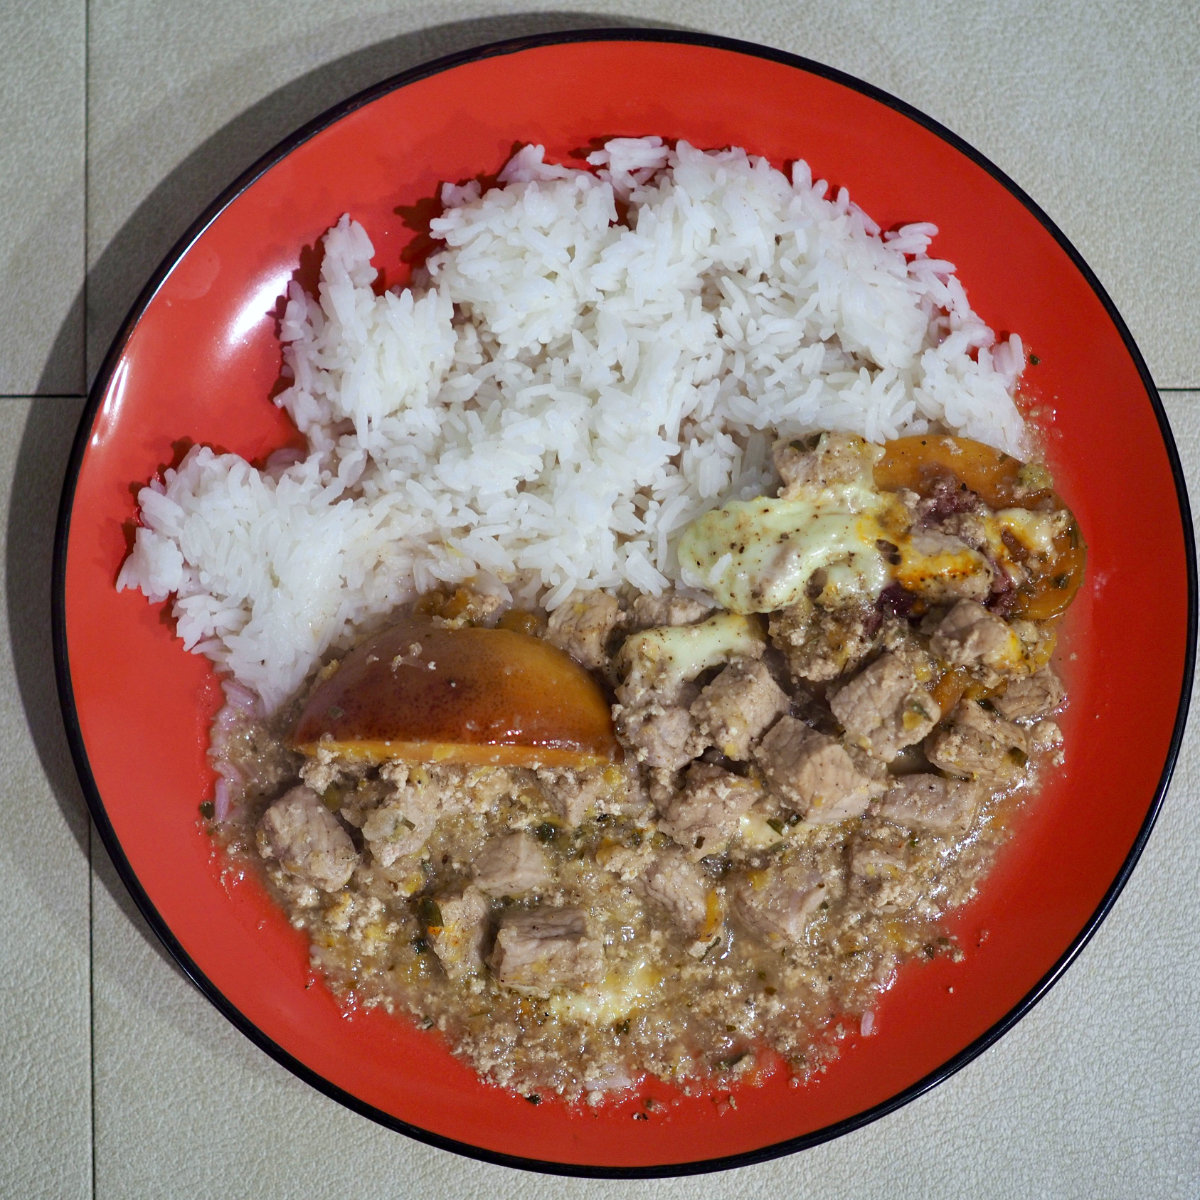 Pork with cheese and peaches